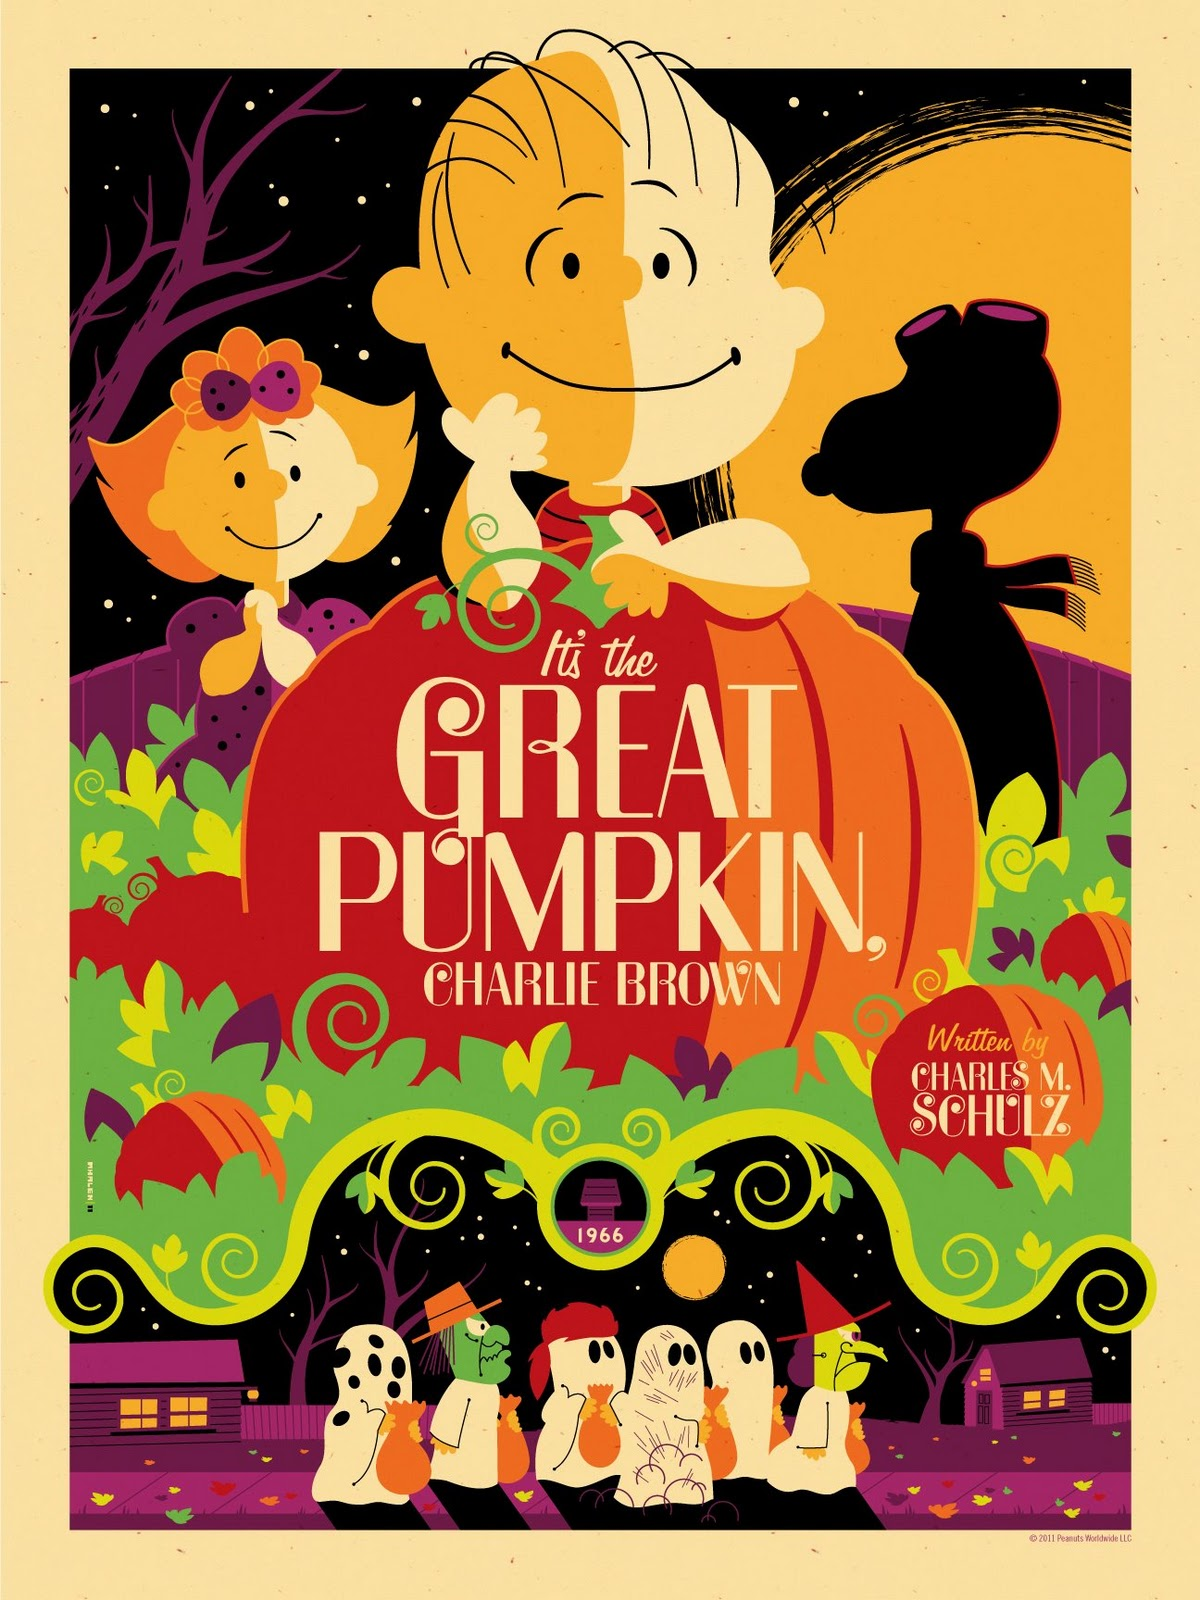 https://www.goodreads.com/book/show/1915739.It_s_the_Great_Pumpkin_Charlie_Brown